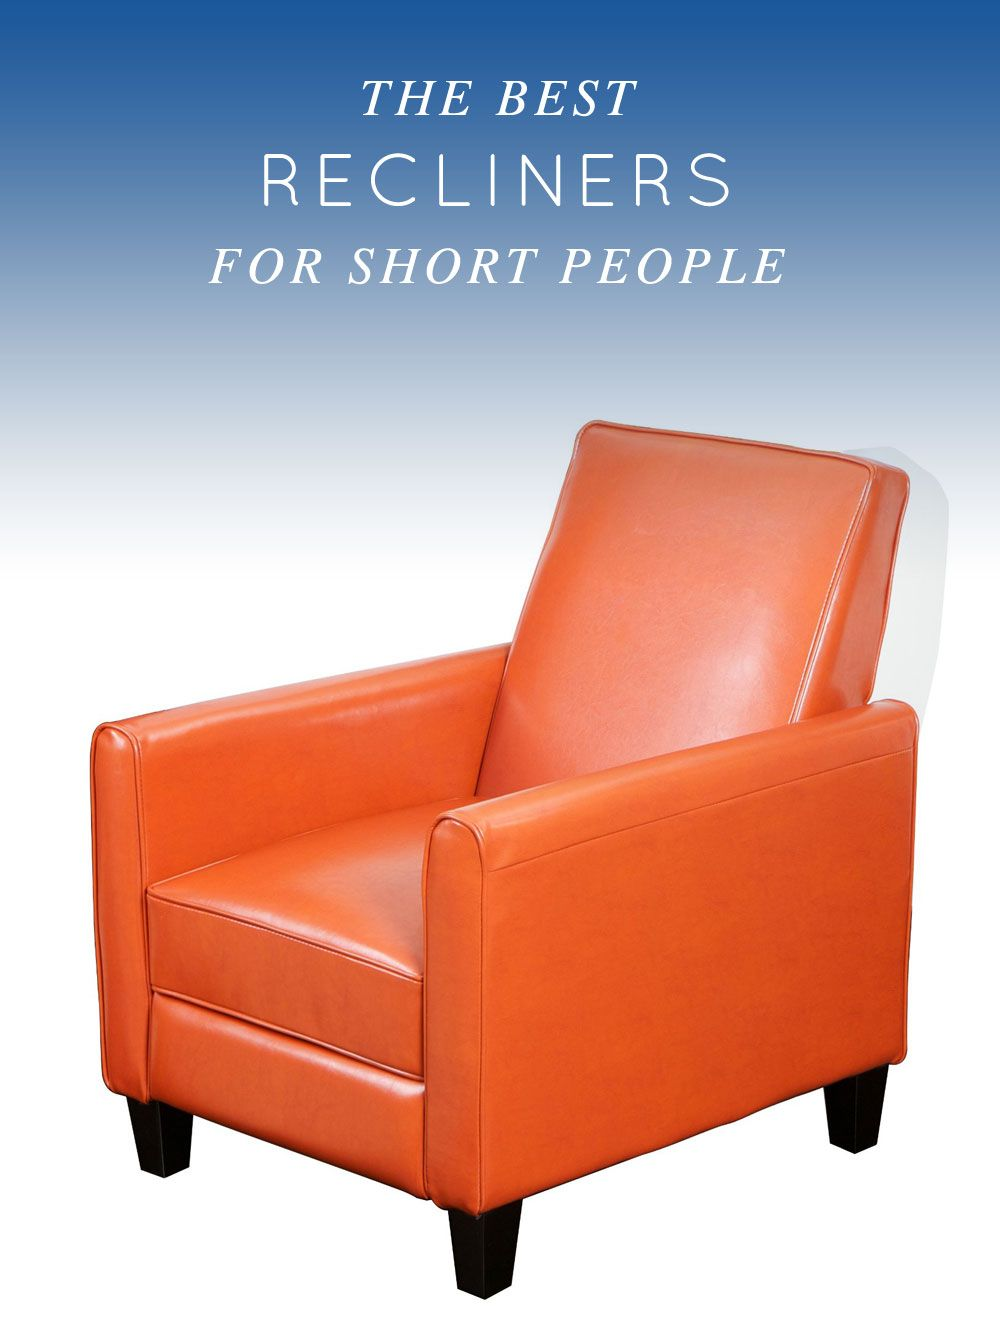 The Best Recliners For Short People Recliners made for short people